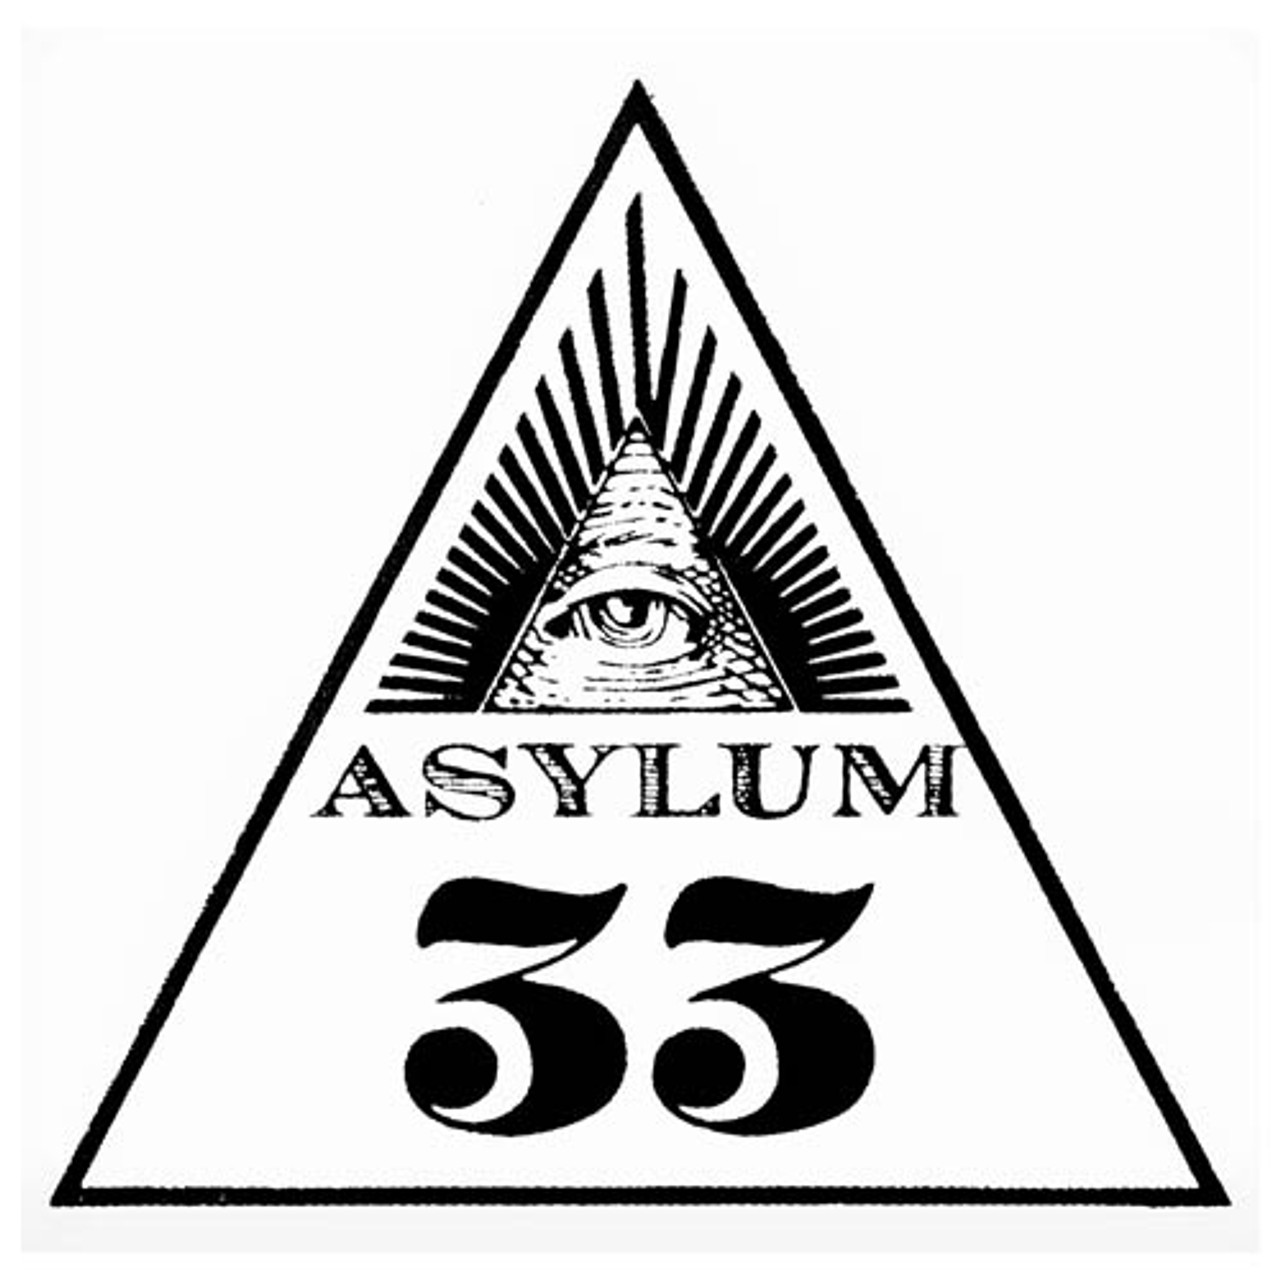 Asylum 33 6X52 Cigars - 6 x 52 (Box of 10)